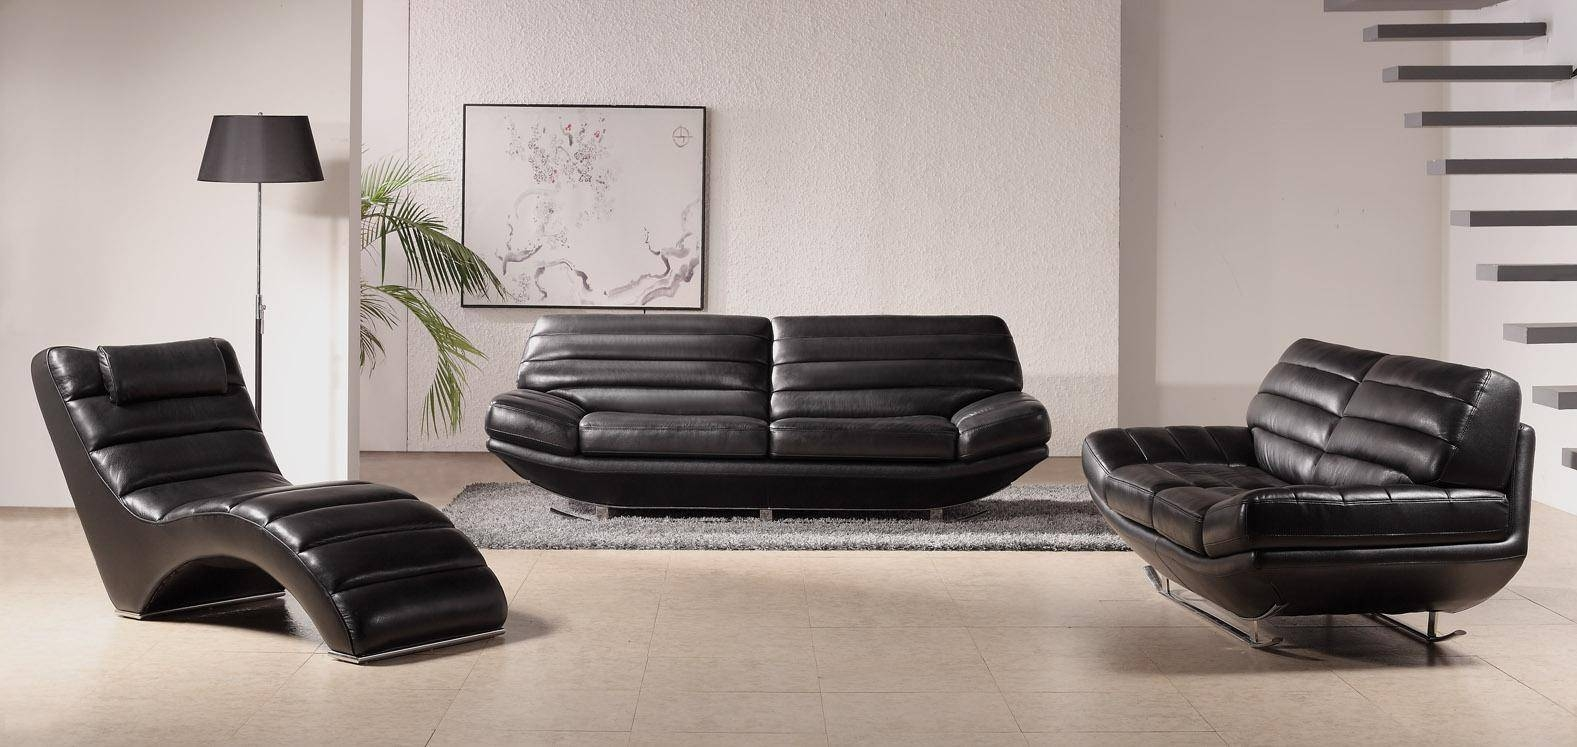 19 Contemporary Leather Sofa Set | Carehouse intended for Contemporary Black Leather Sofas (Image 1 of 30)